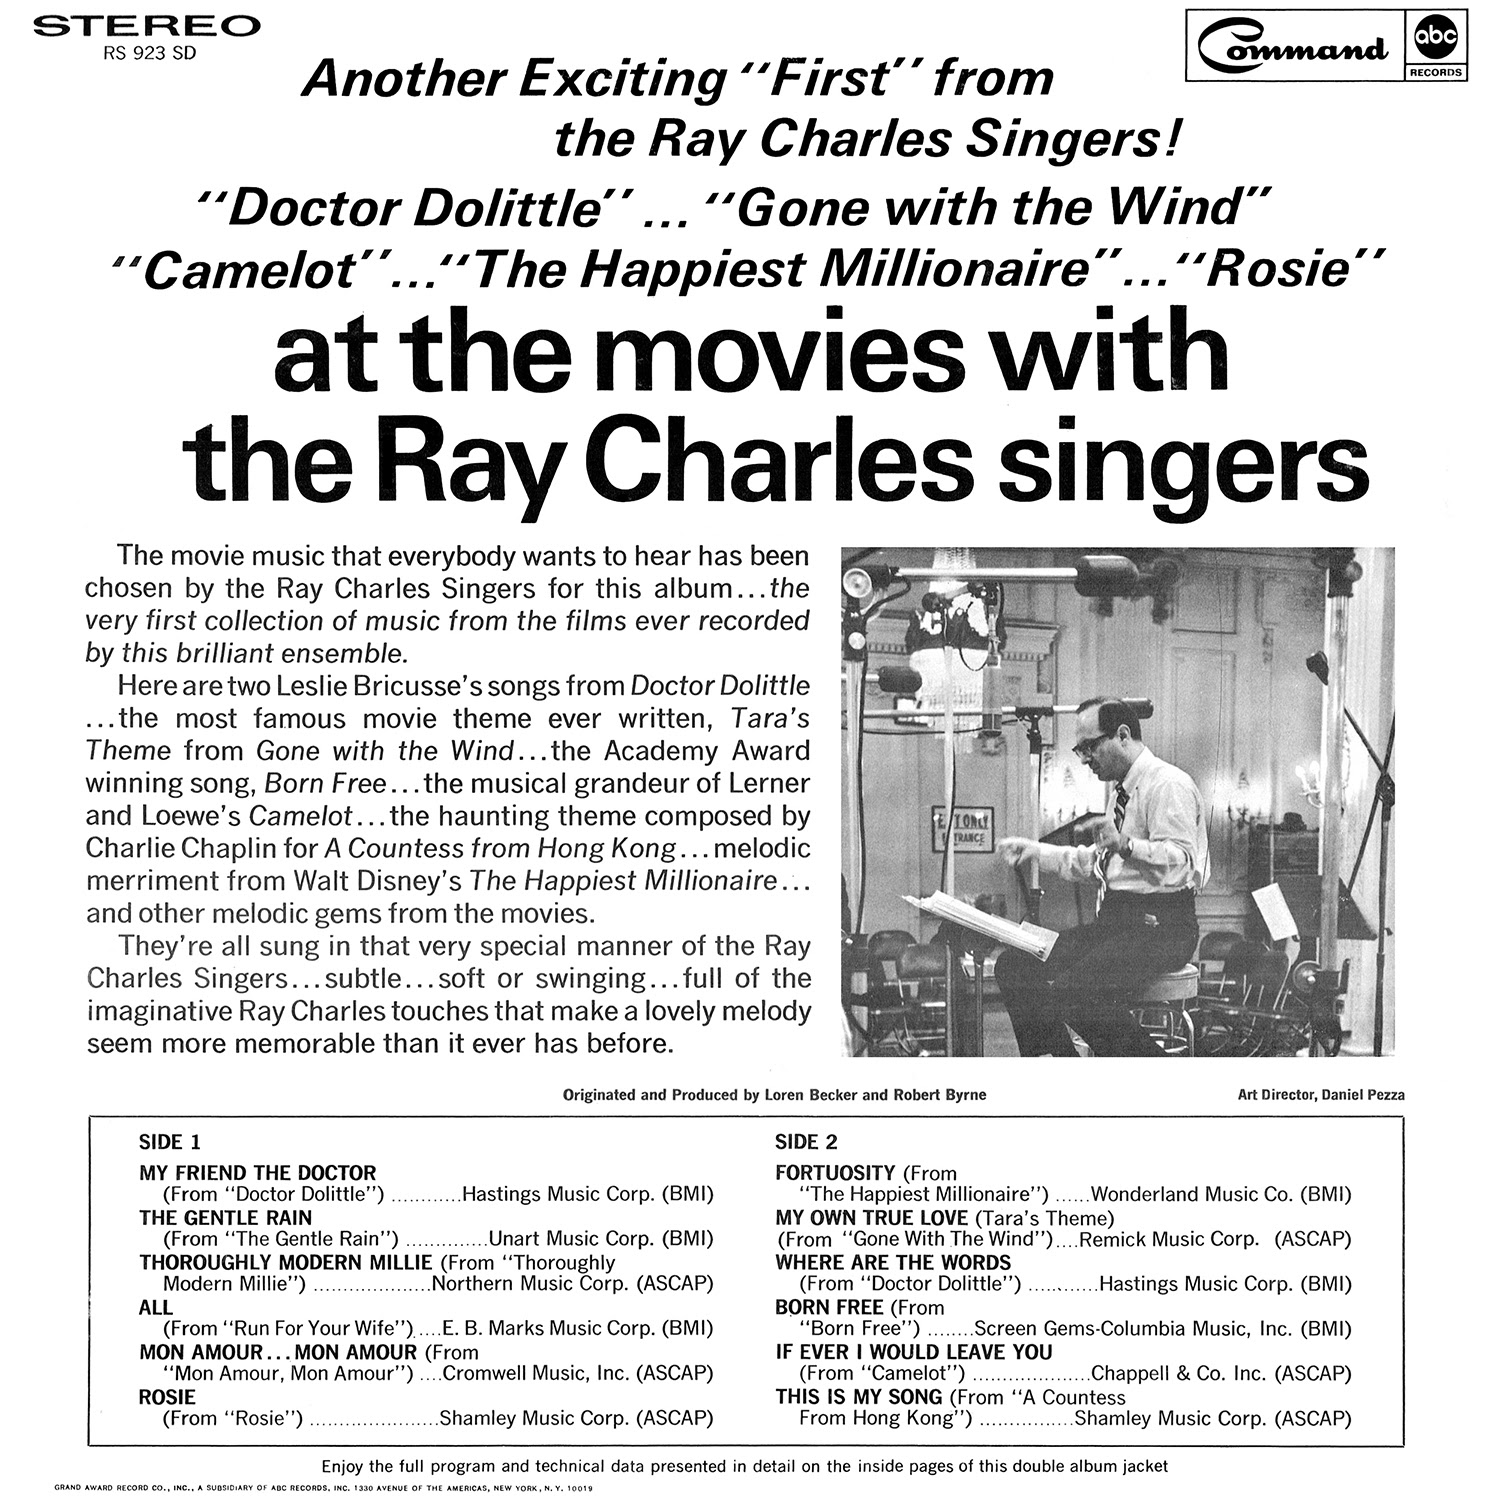 The Ray Charles Singers